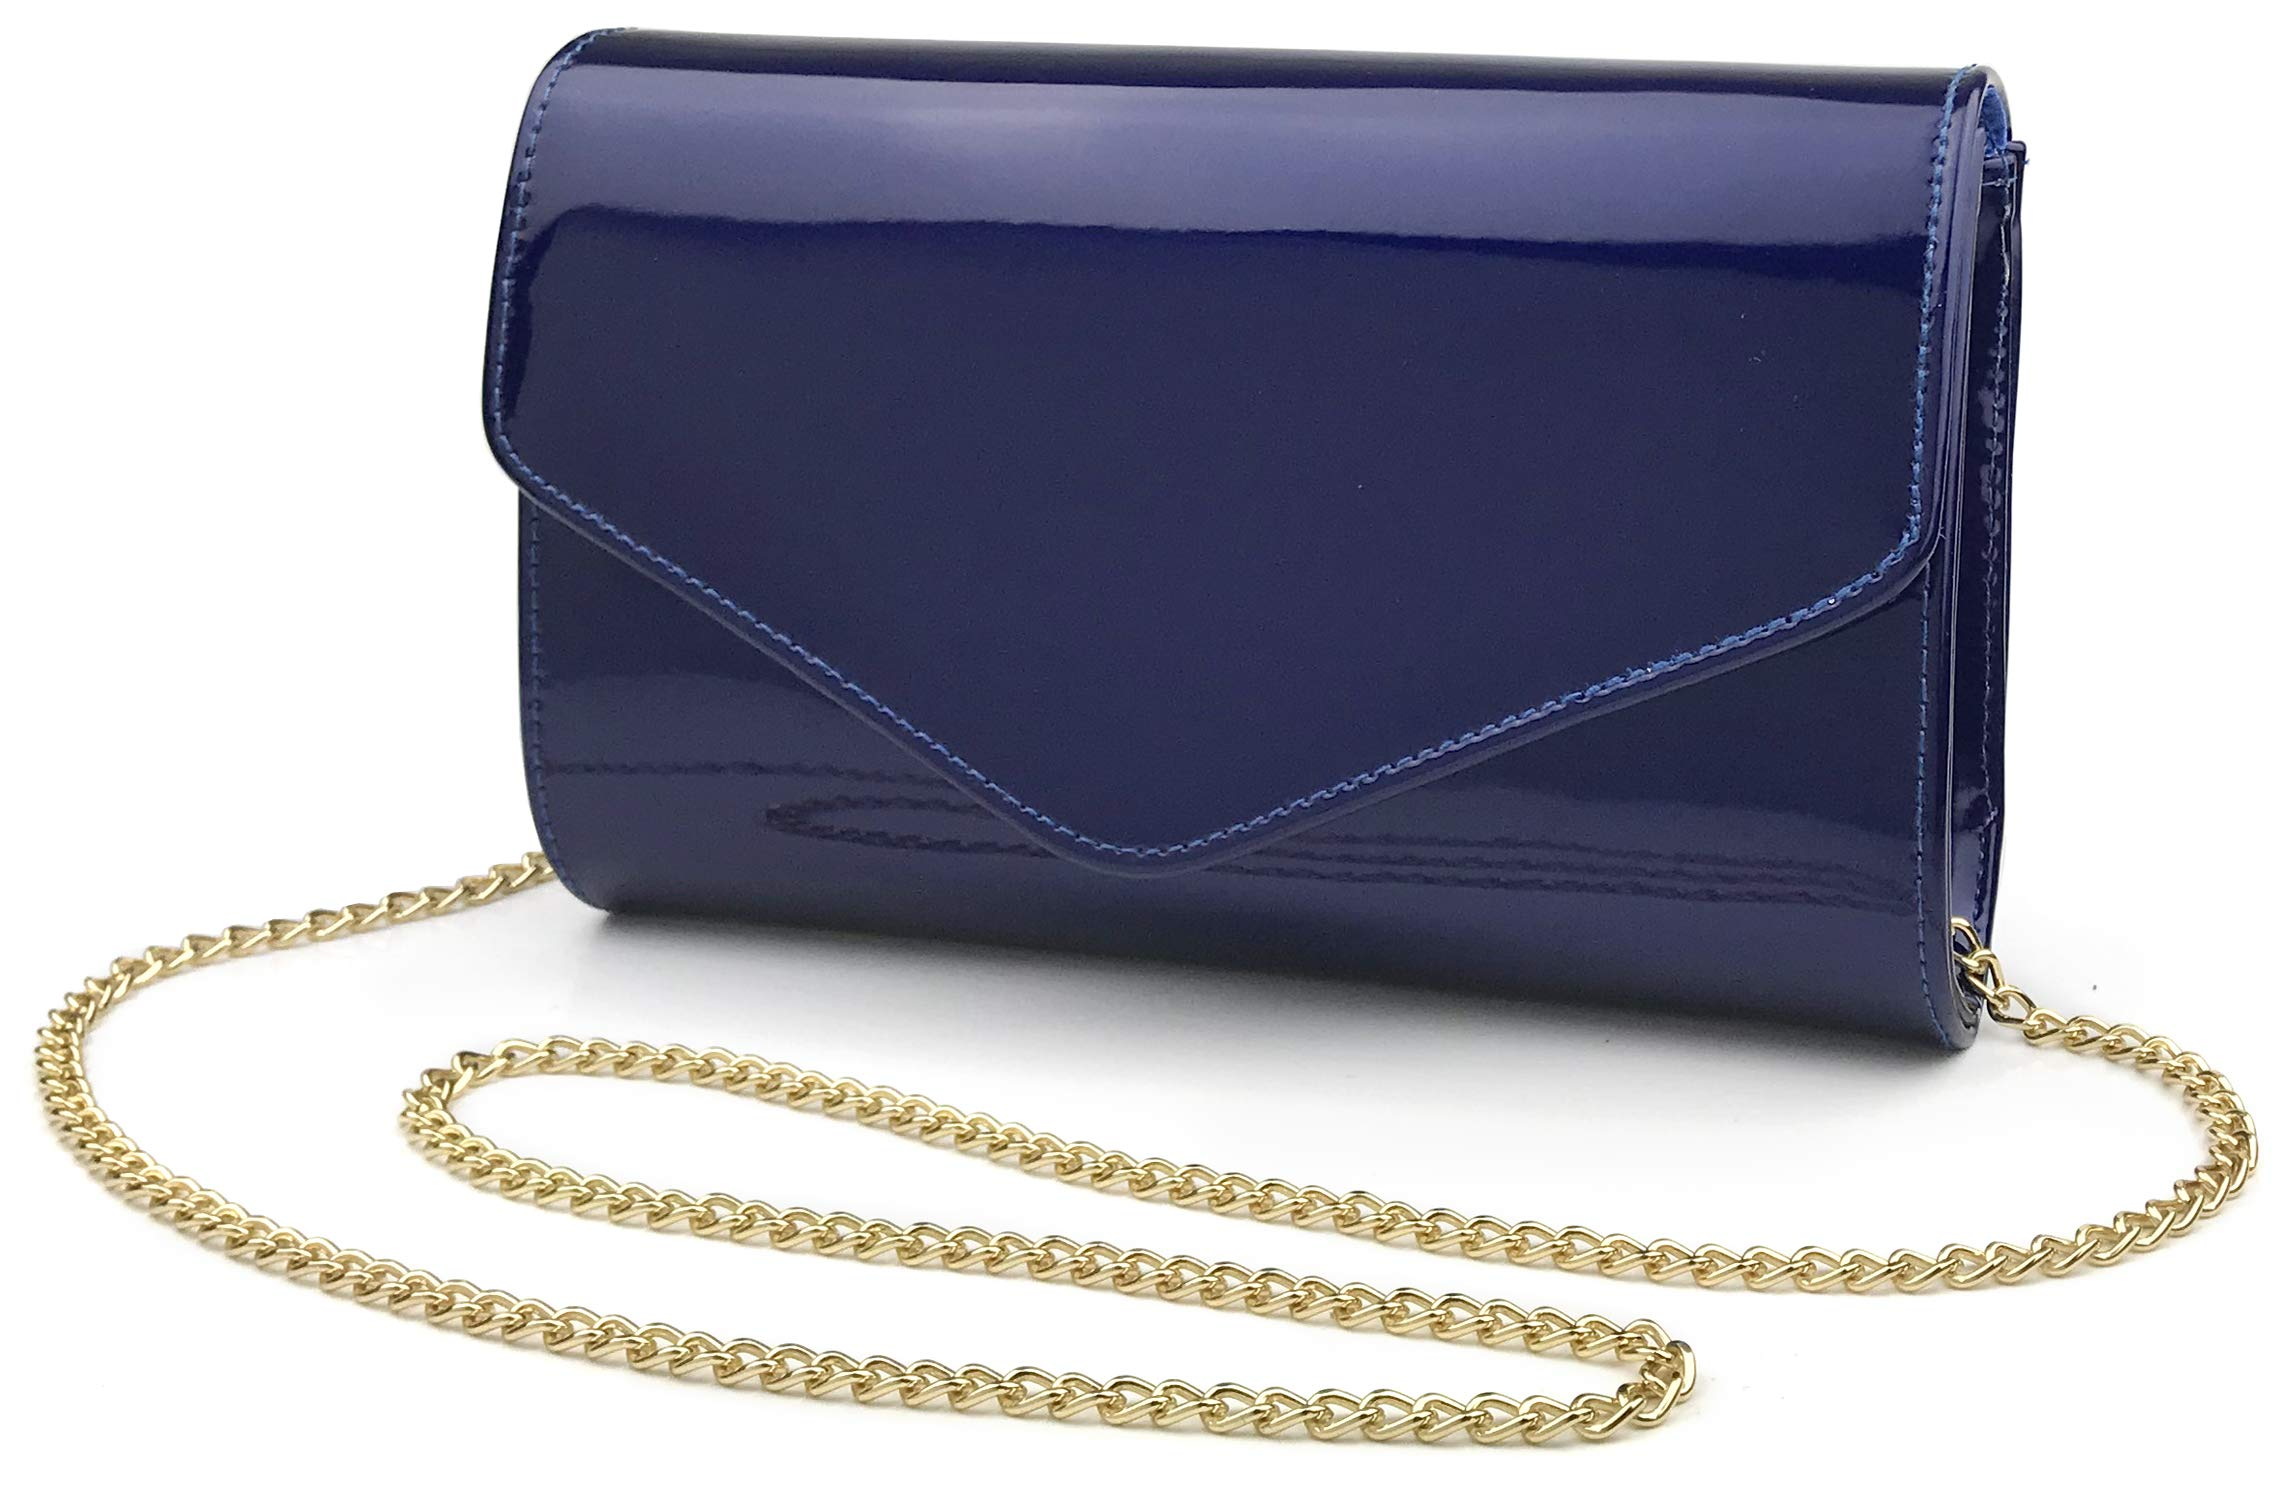 Glossy Envelope Evening Clutch Faux Patent Leather Women Chain Shoulder Bag Solid Color Purse (Navy)